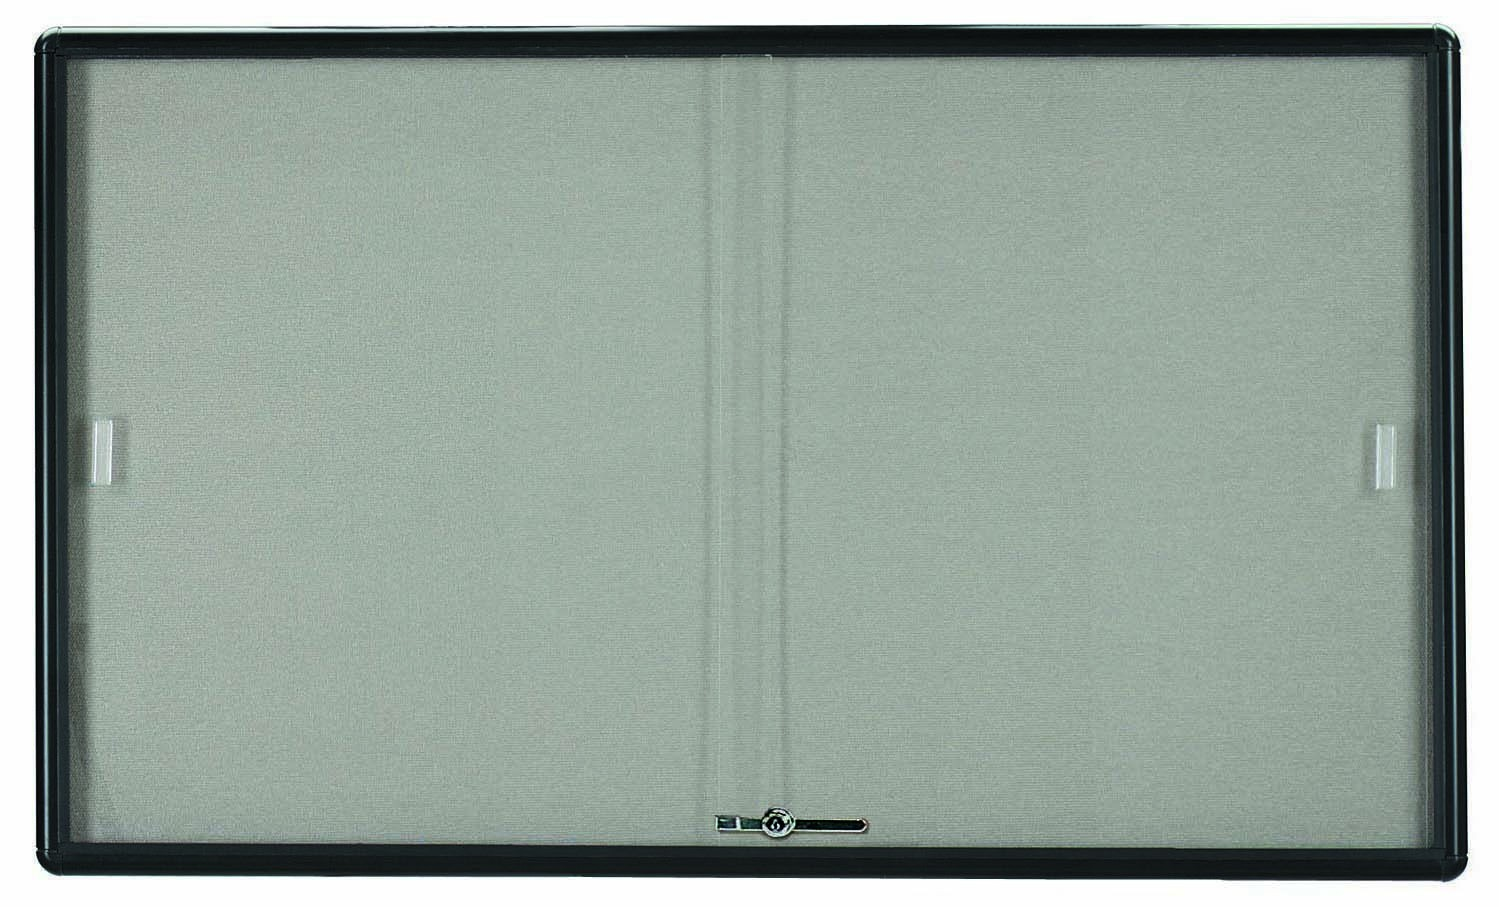 Radius Enclosed Sliding Door Bulletin Board - Graphite/grey - 36